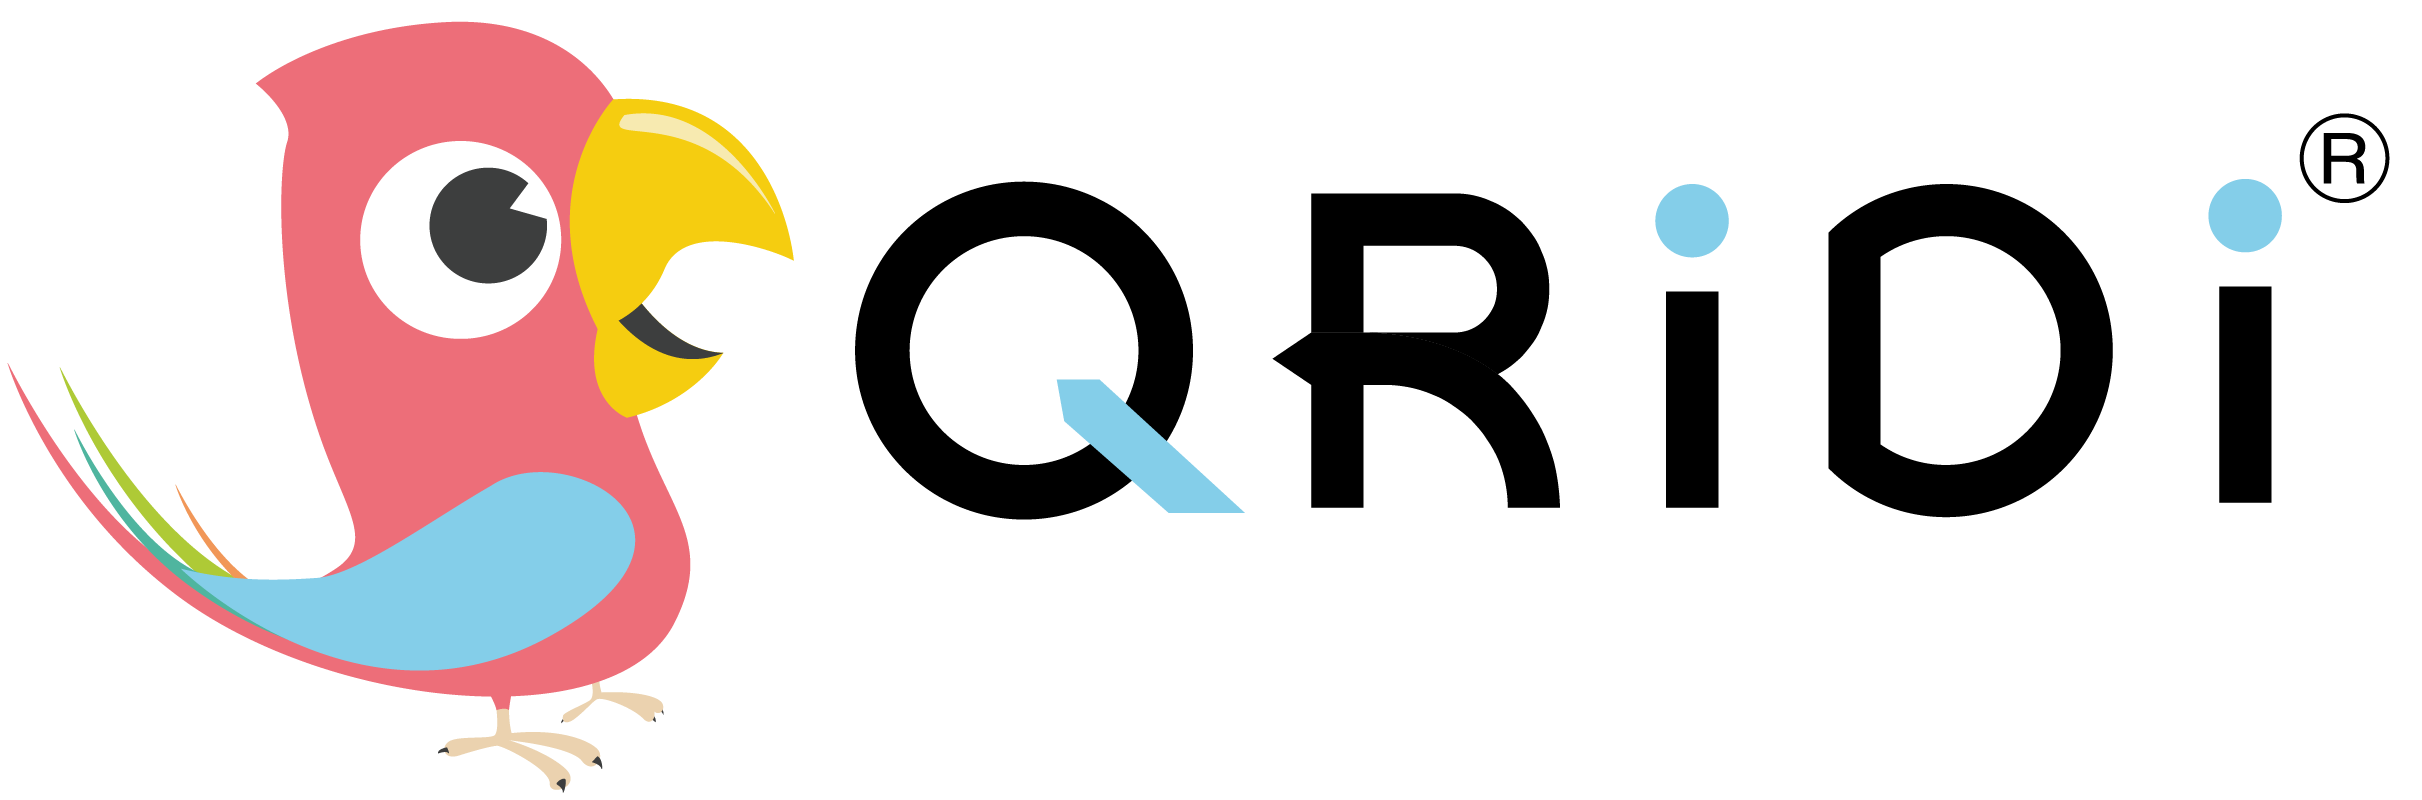 Qridi education logo